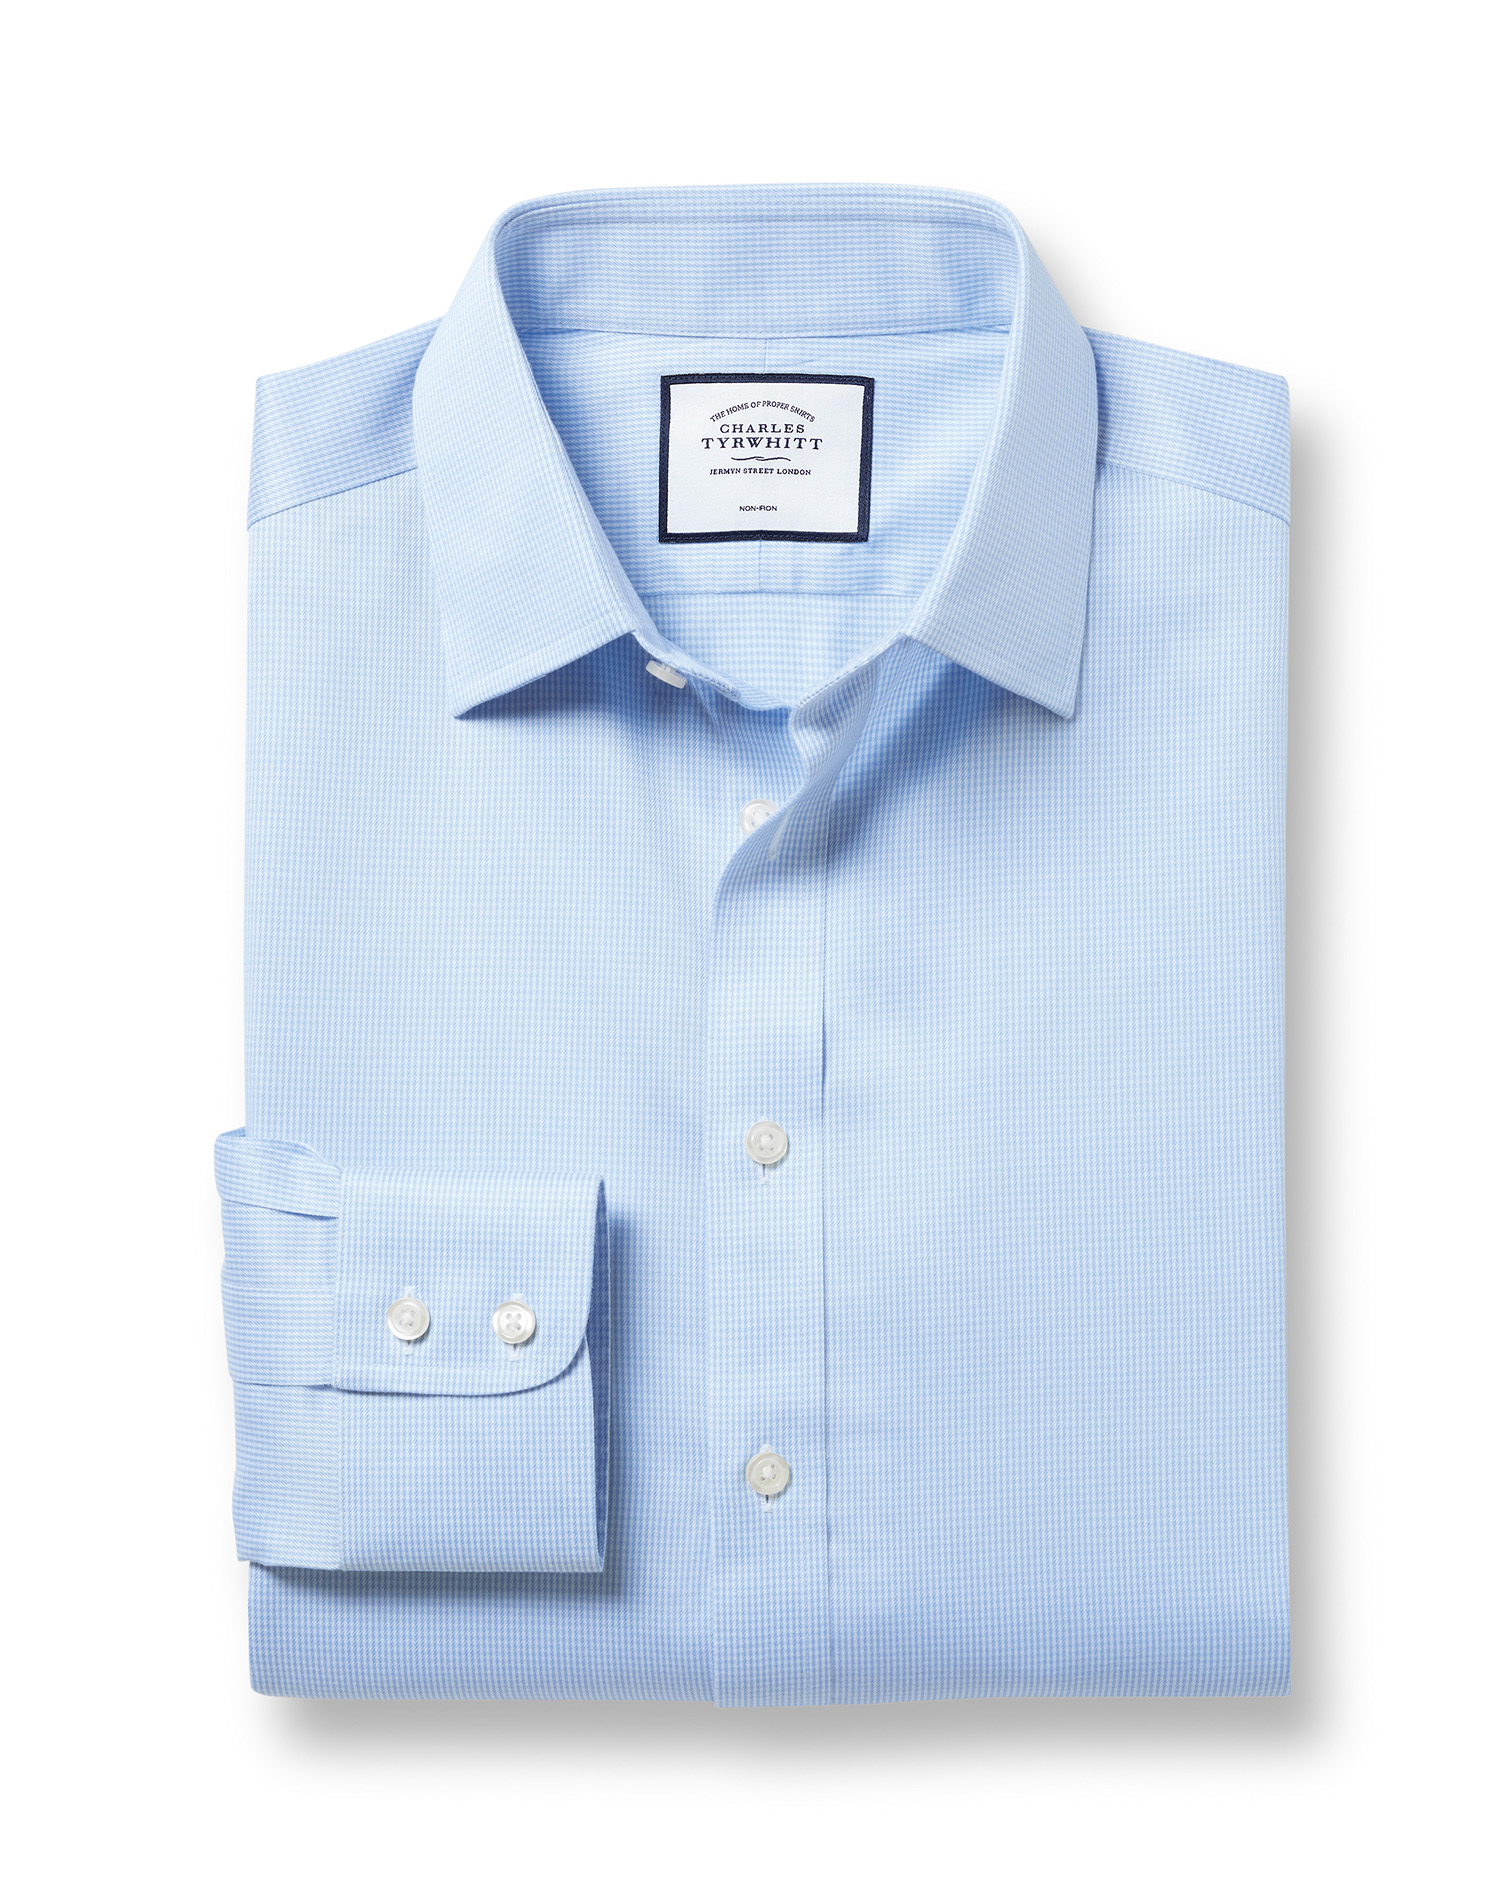 Classic Fit Non-Iron Sky Blue Puppytooth Cotton Formal Shirt Single Cuff Size 19/38 by Charles Tyrwh